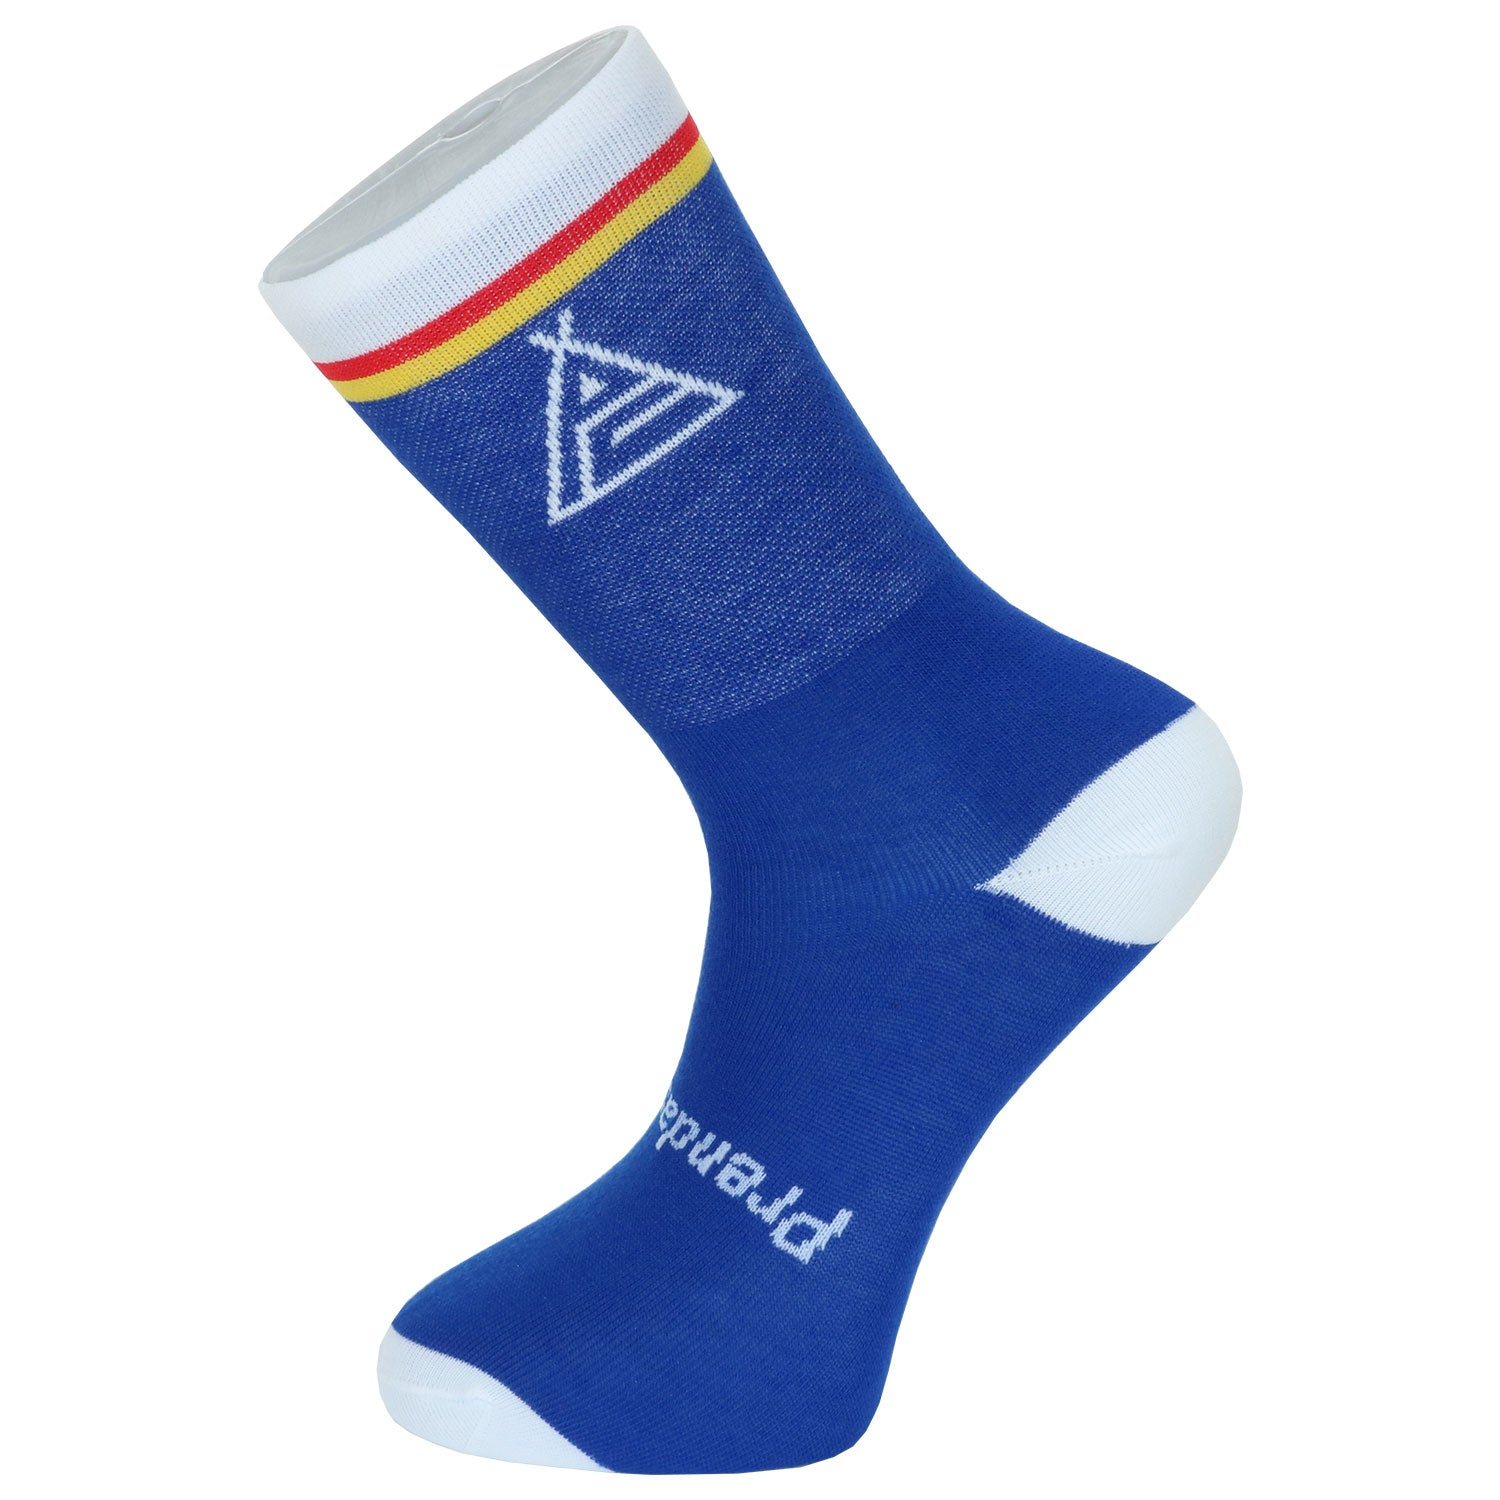 Prendas 'Sonic Retro Coolmax Socks